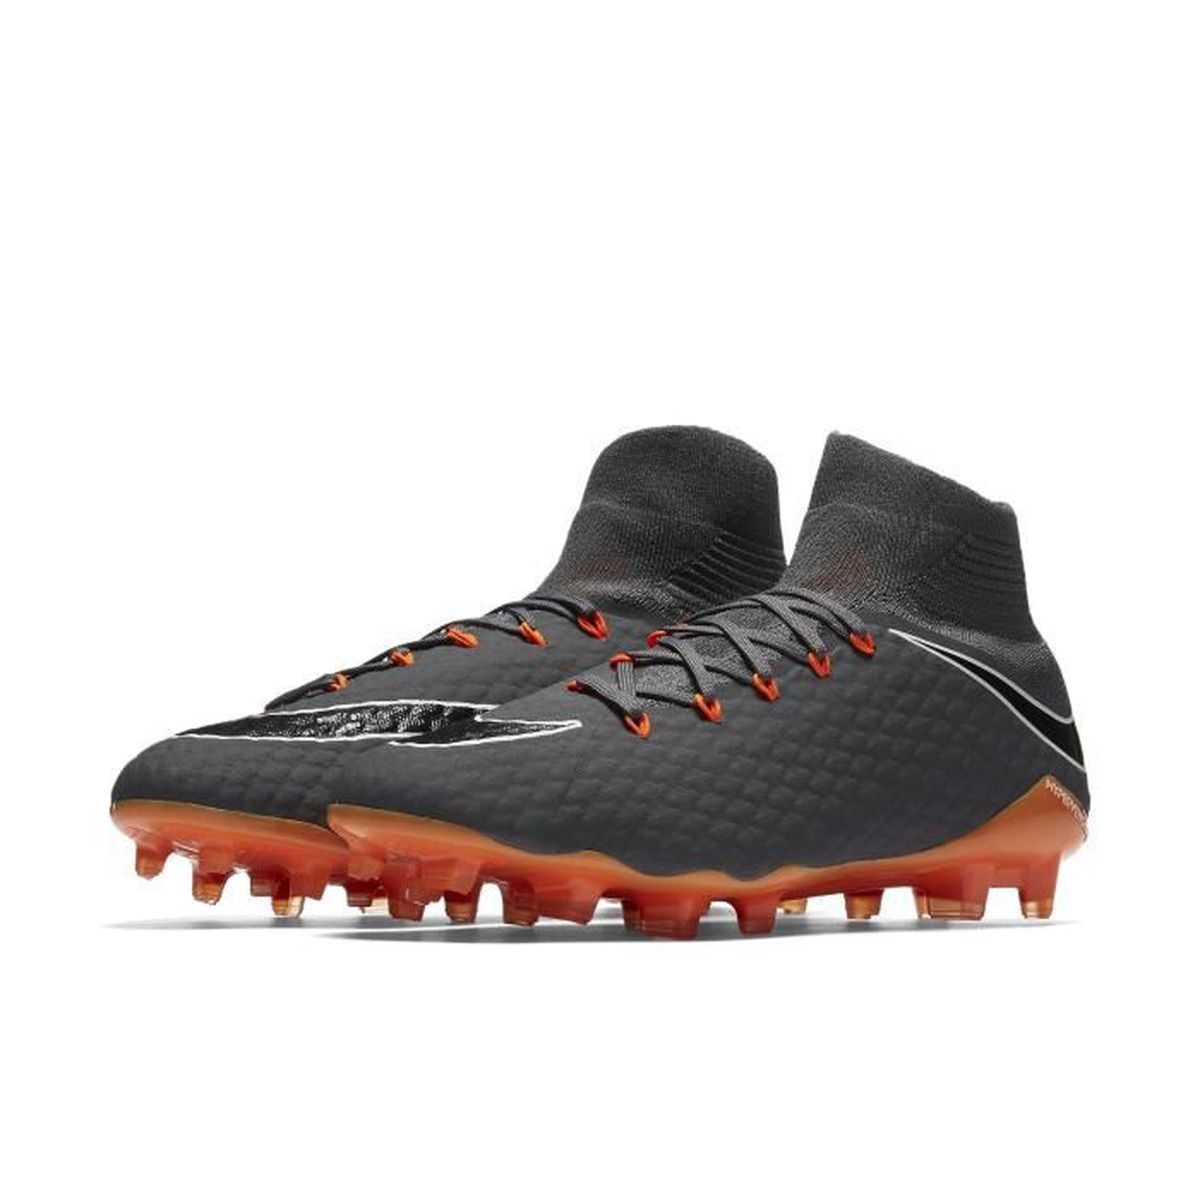 finest selection 9ad5e a39f6 CHAUSSURES DE FOOTBALL Nike Hypervenom Phantom III Pro Dynamic Fit FG, So.  FINITION IMPARABLEnnPensée pour ...